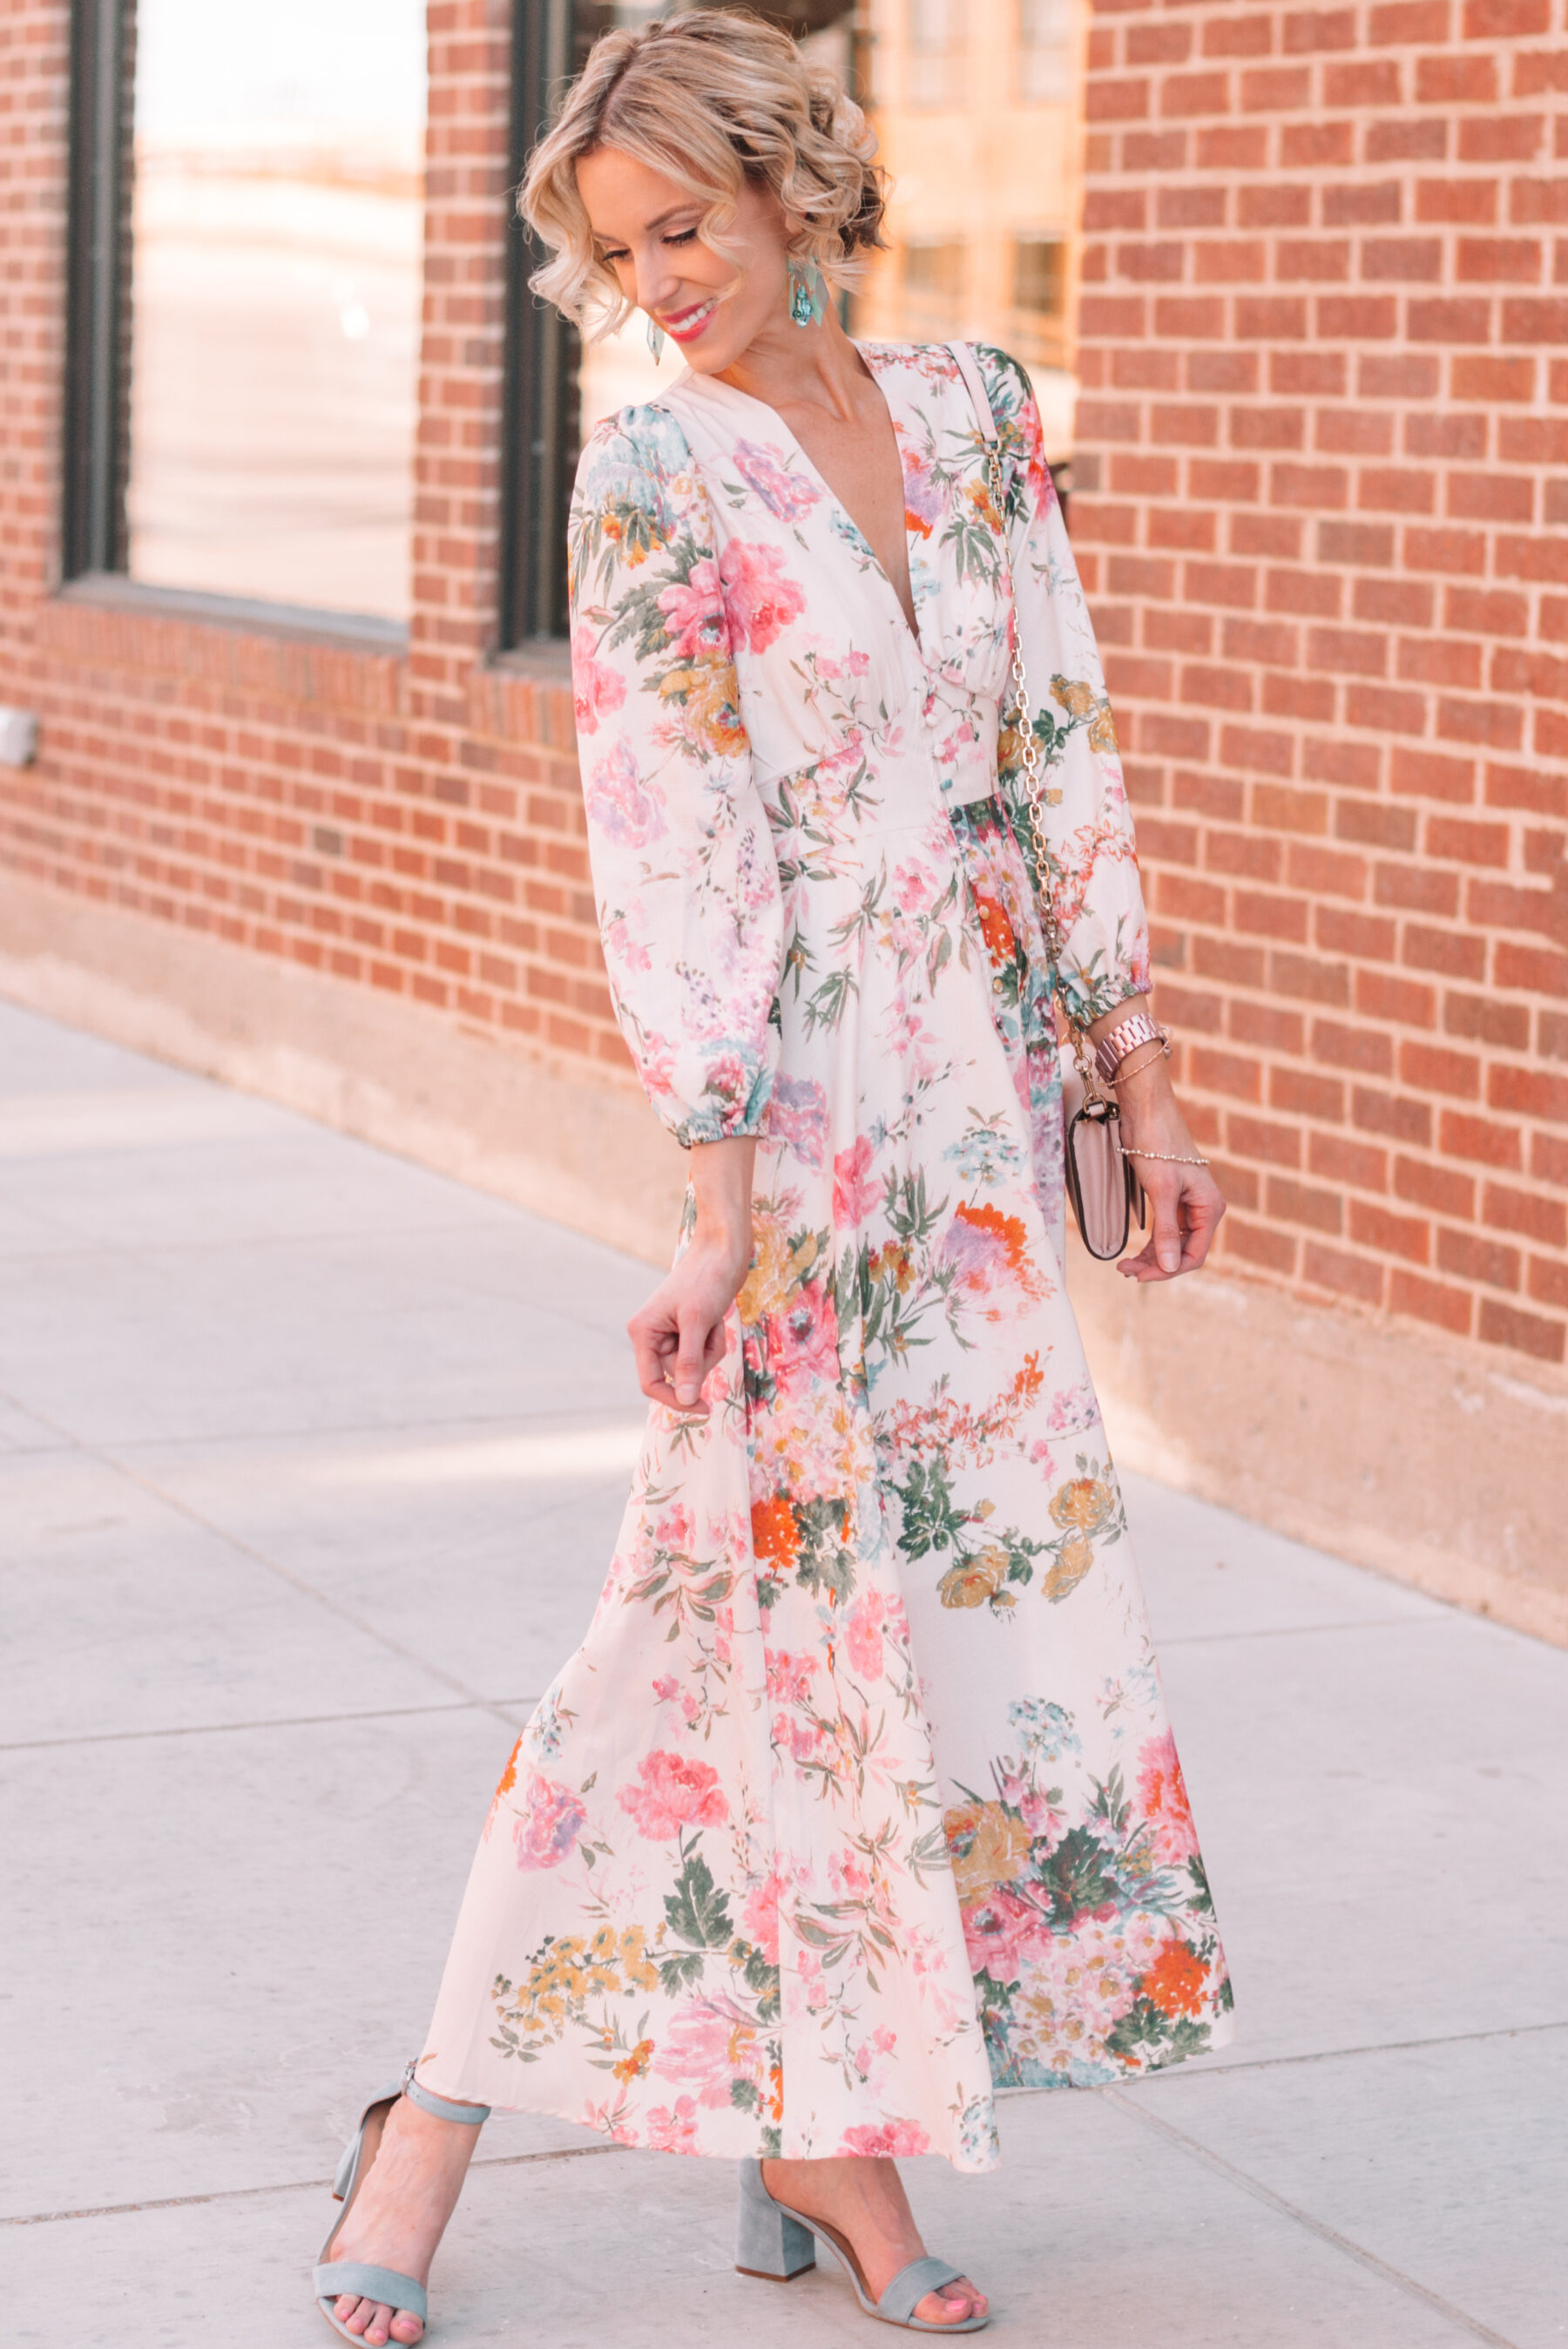 502e41c39fa3 The Most Flattering Style Dress + Easter Dress Ideas - Straight A Style